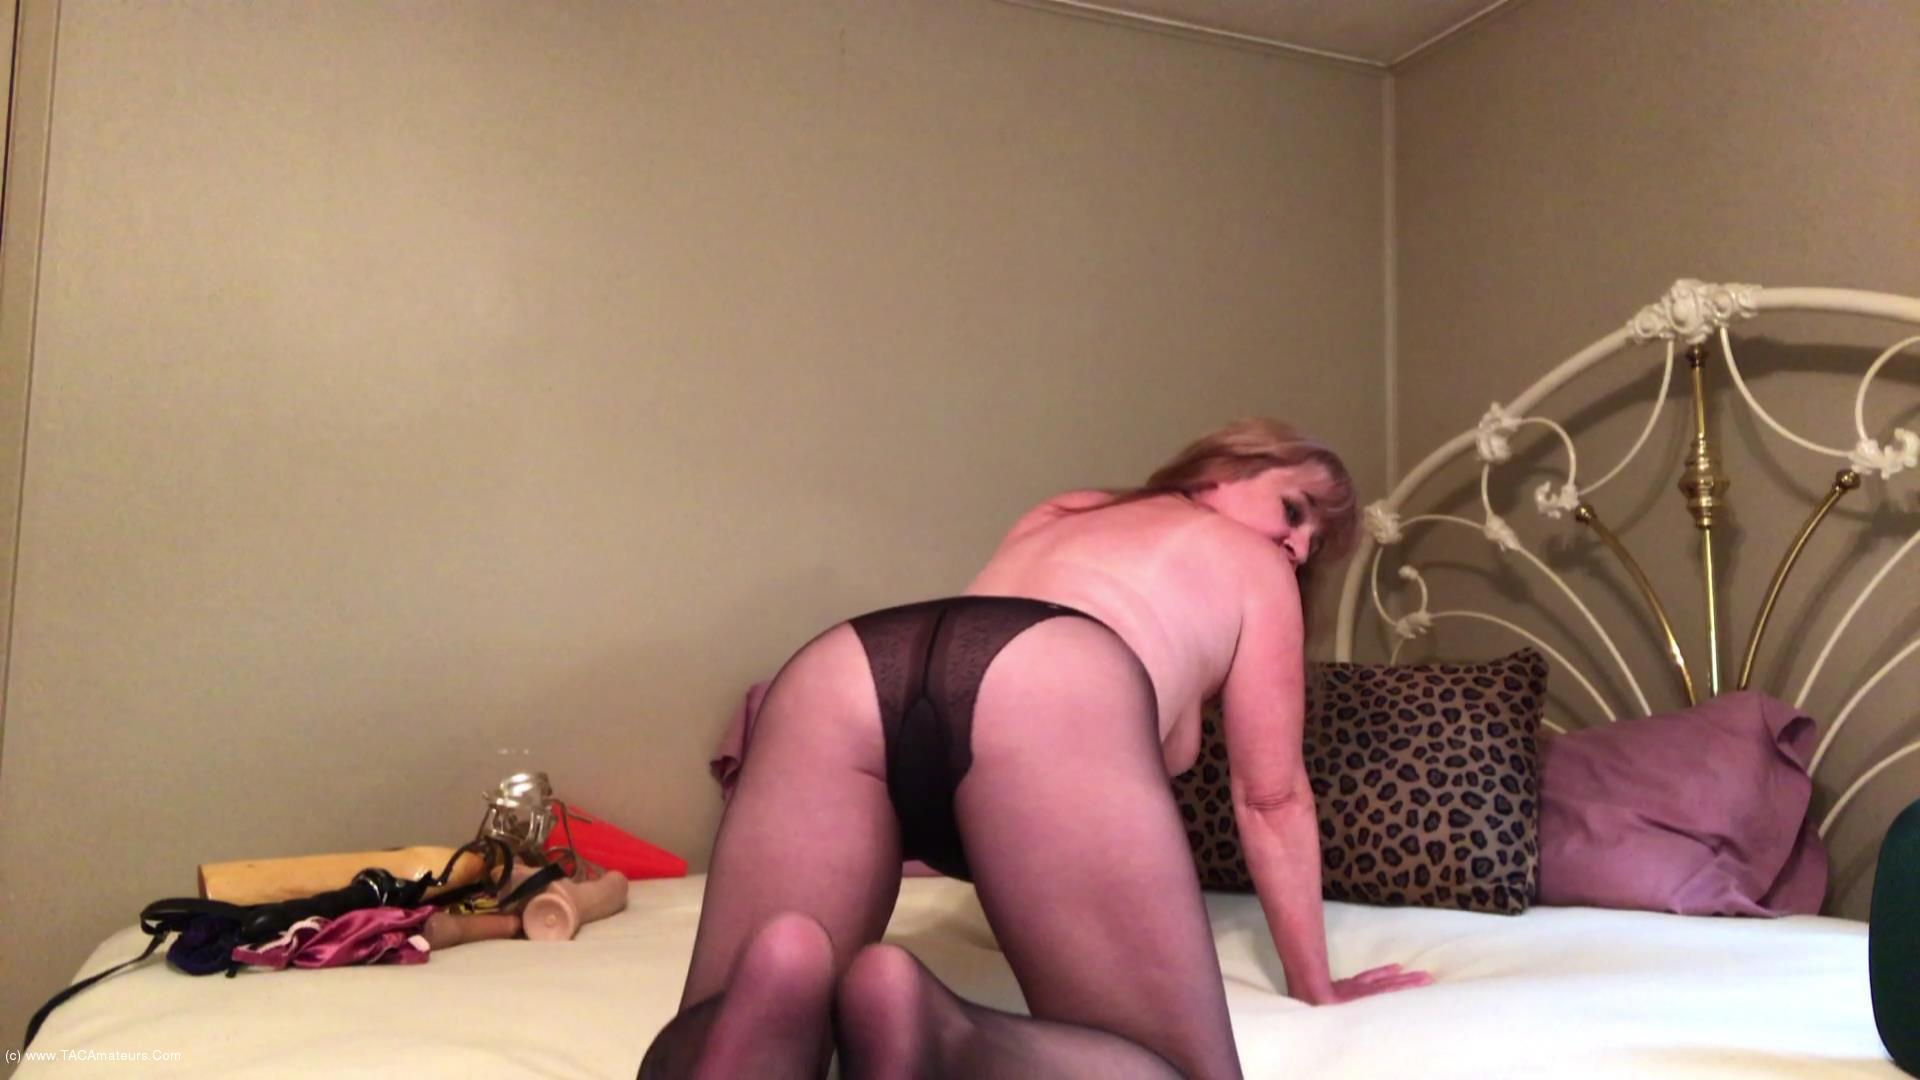 CougarBabeJolee - Sultry Pantyhose Devine Worship scene 0